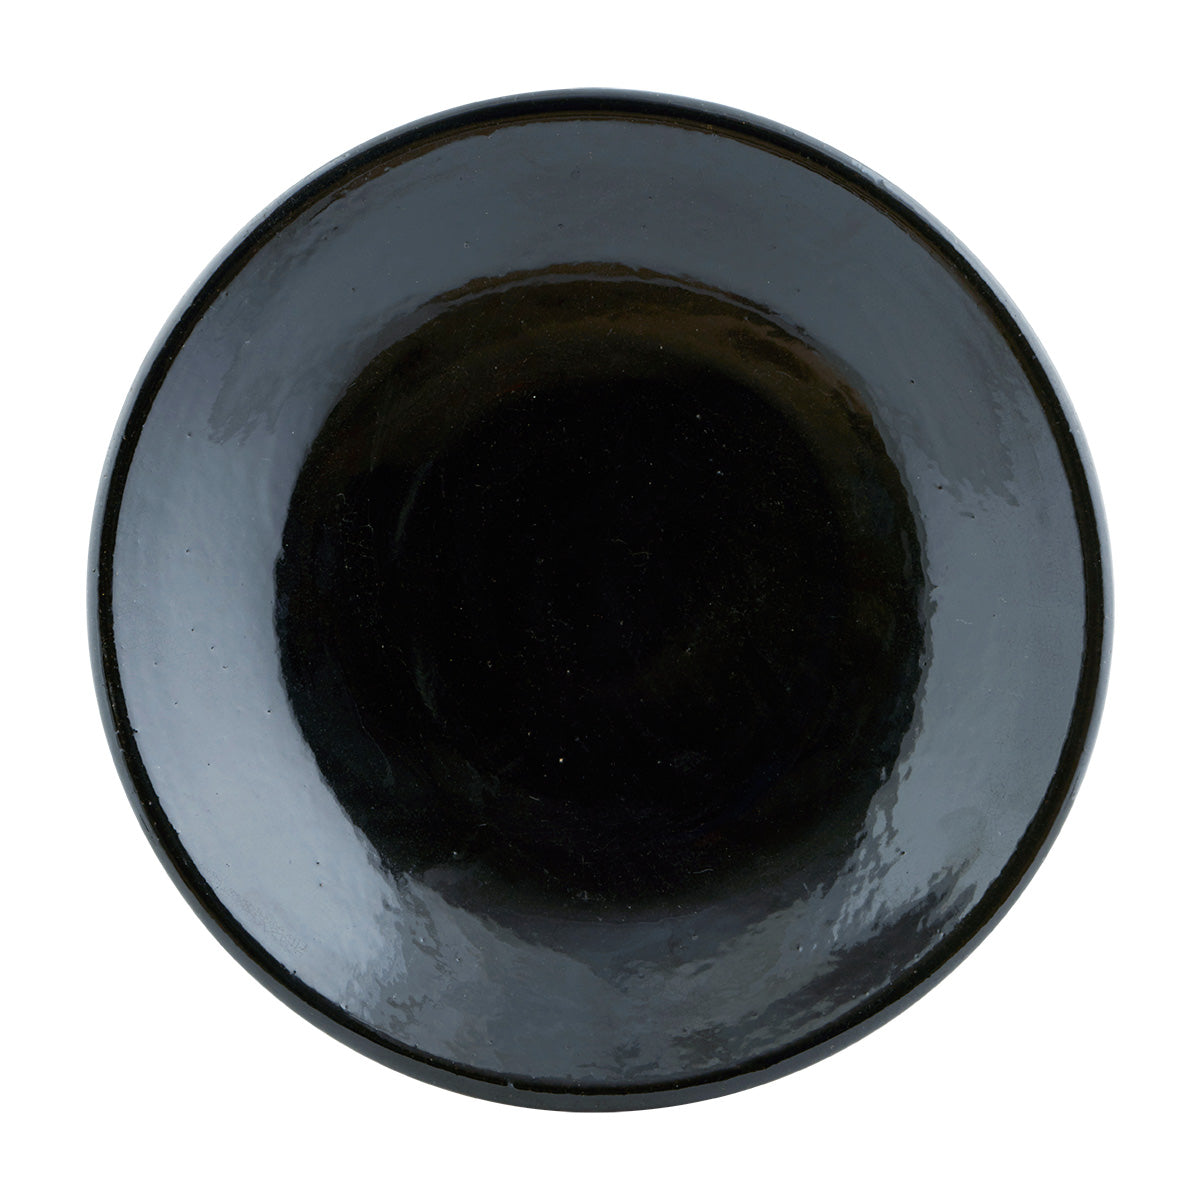 Heri Large Black Ceramic Bowl